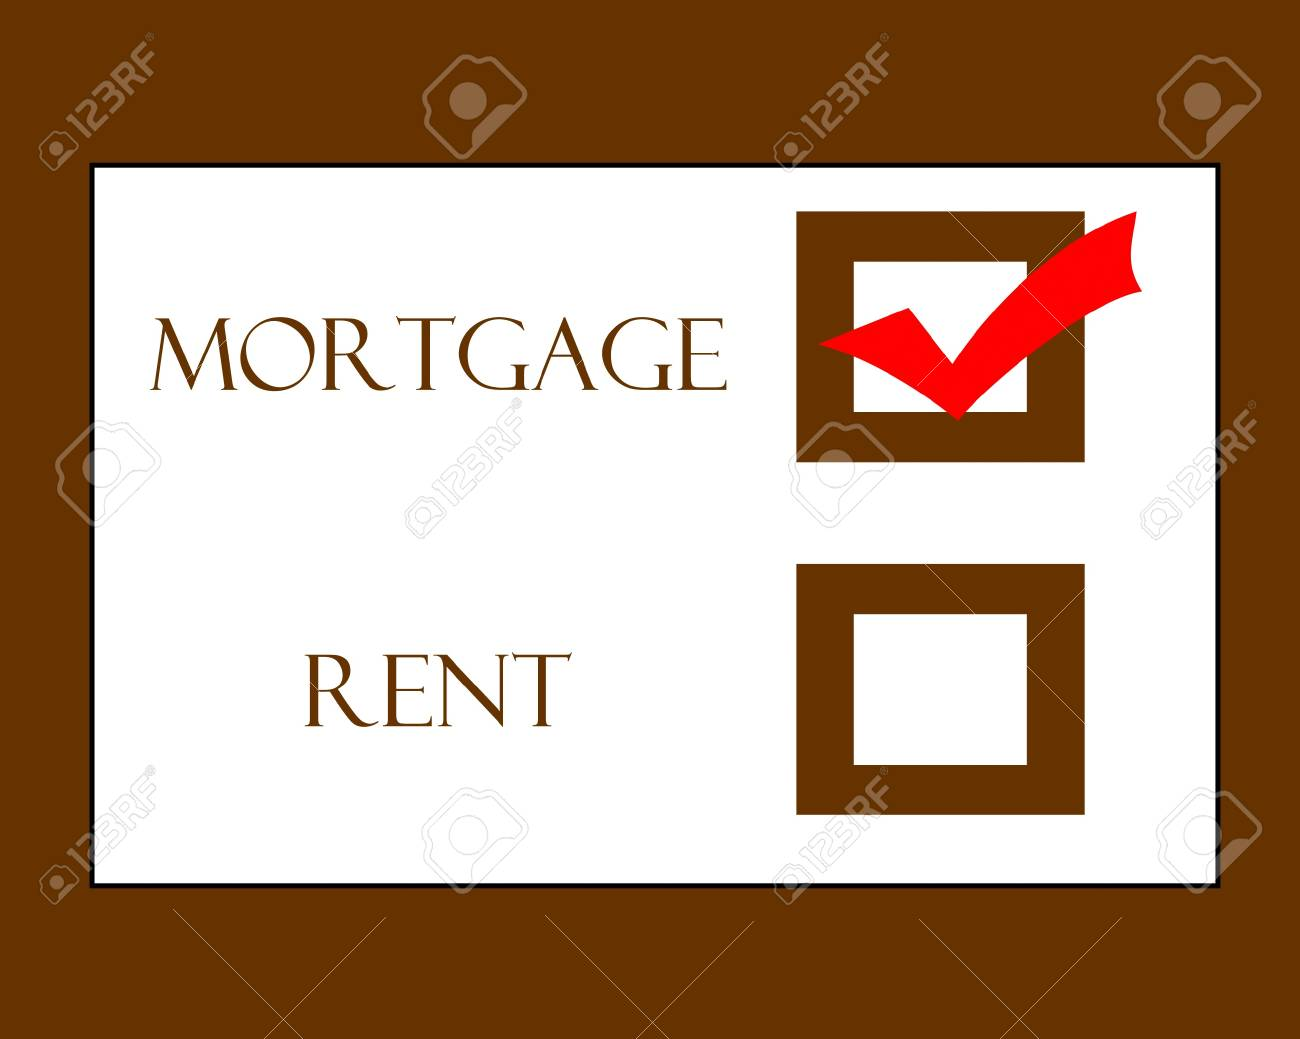 Mortgage or rent 37